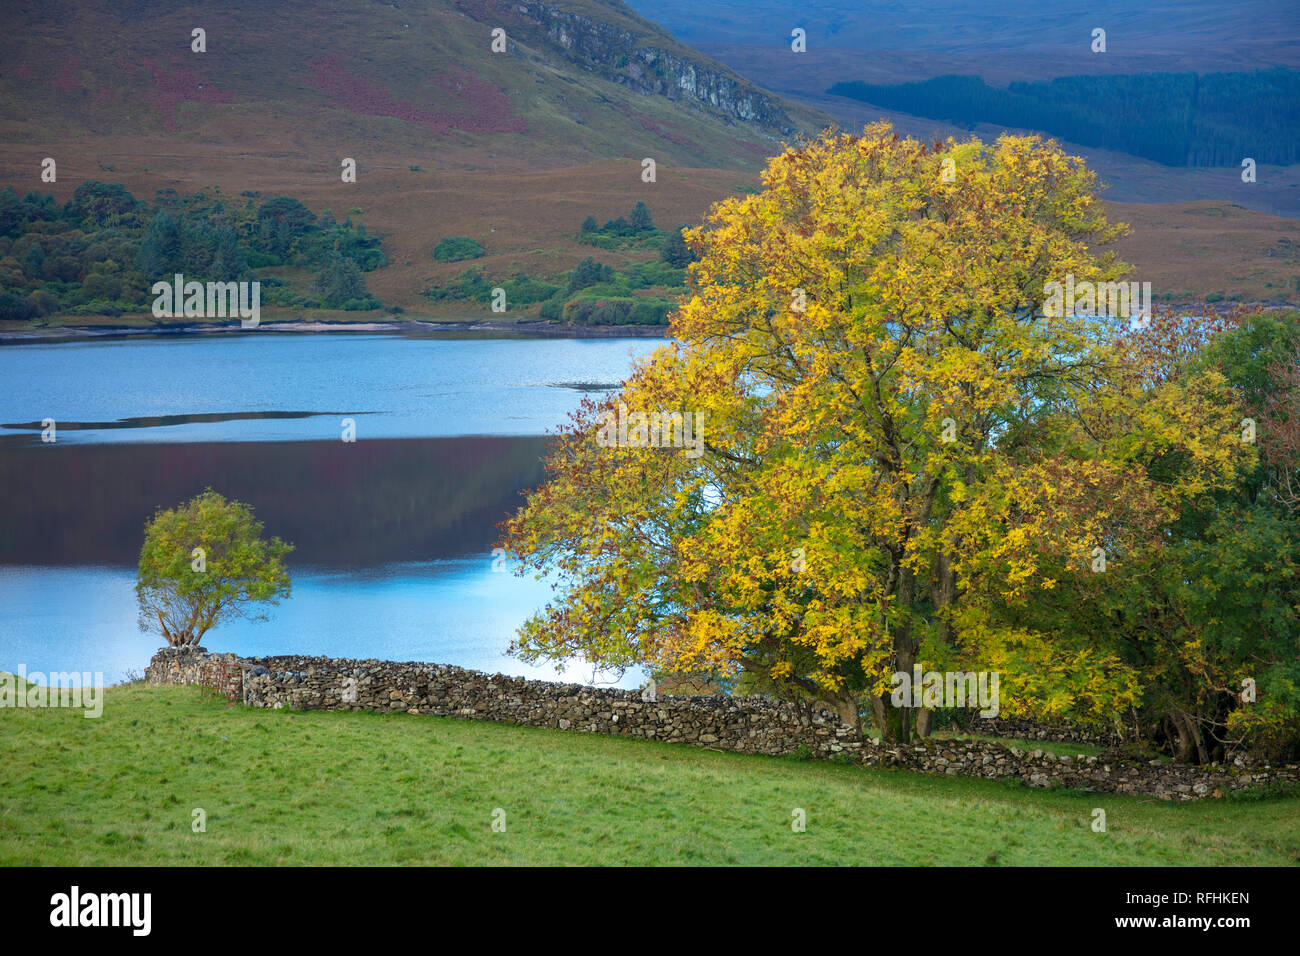 Autumn tree on the shore of Dunlewy Lough, County Donegal, Ireland. - Stock Image